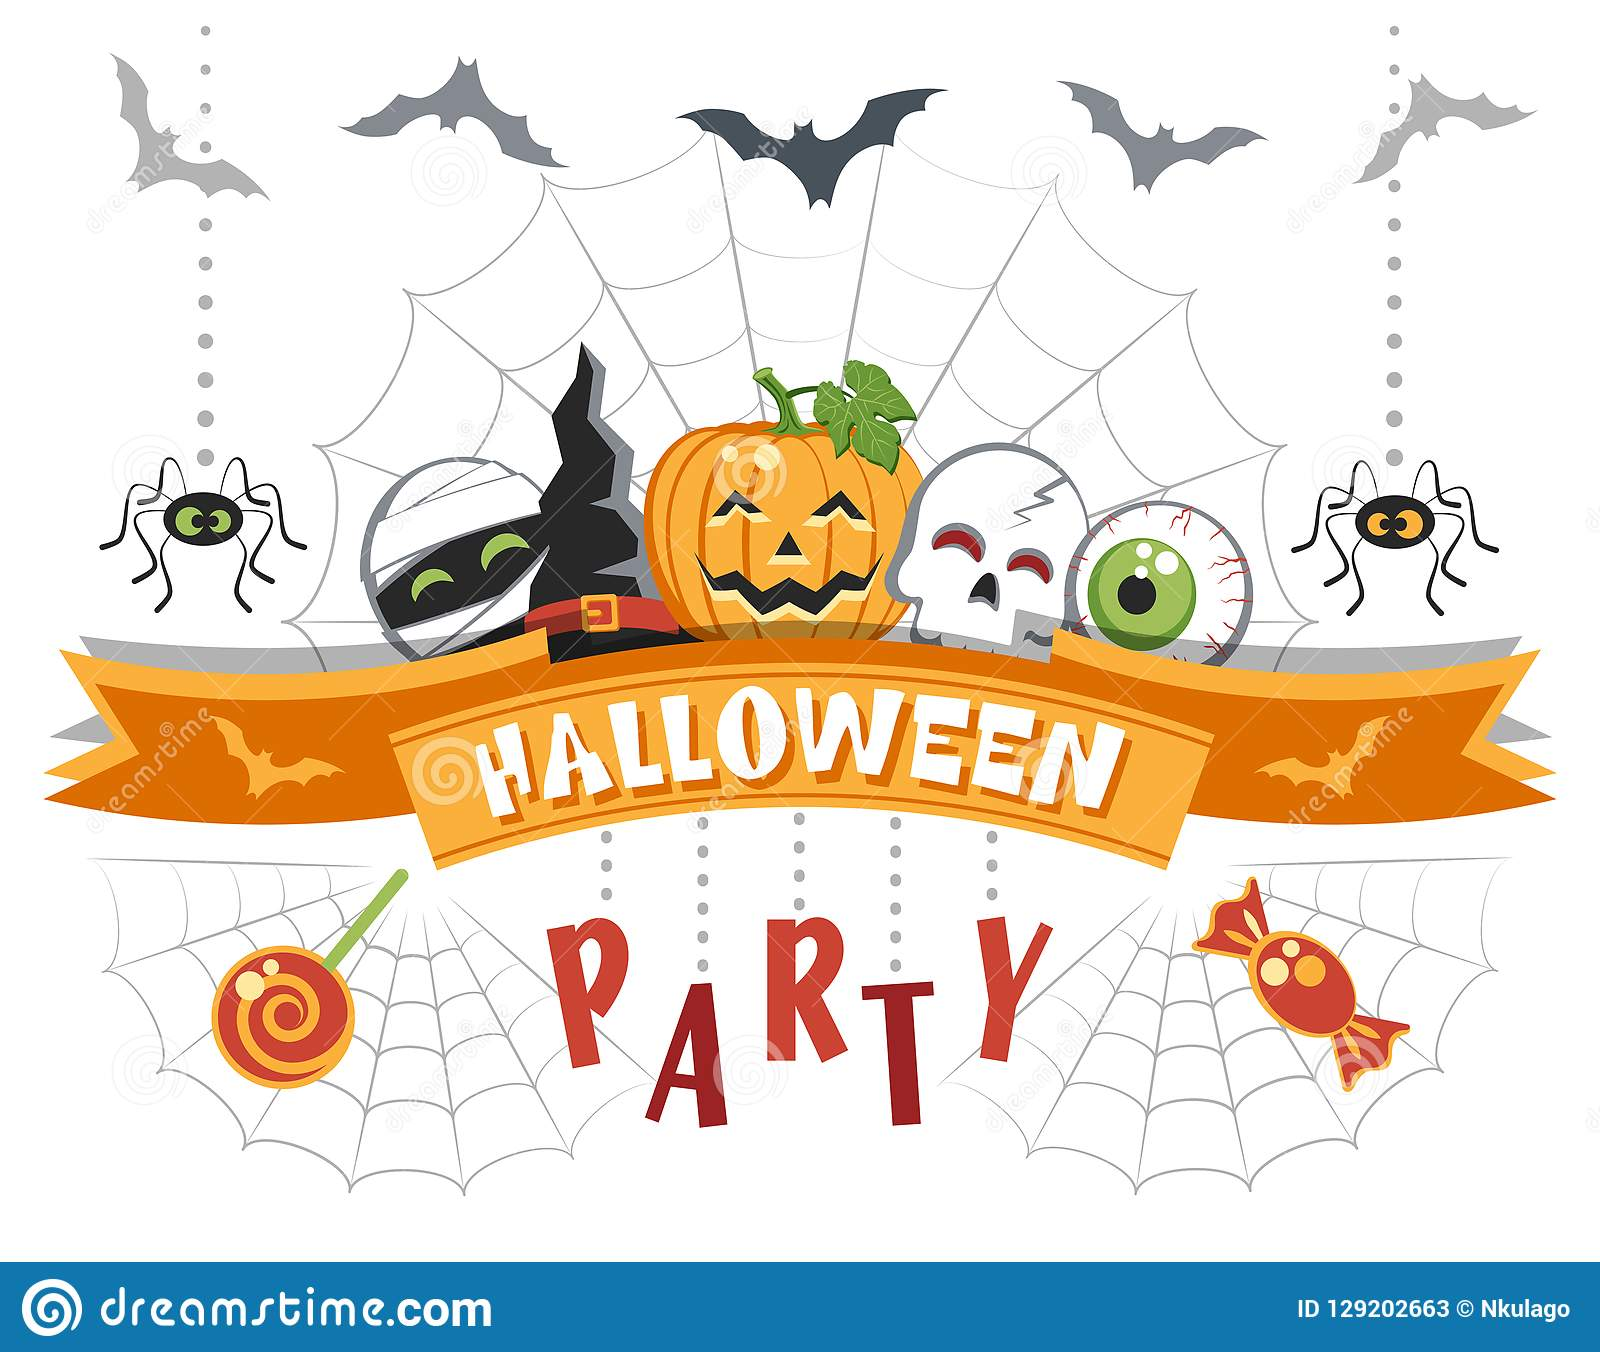 Halloween Party. Greeting card with funny cartoon characters.